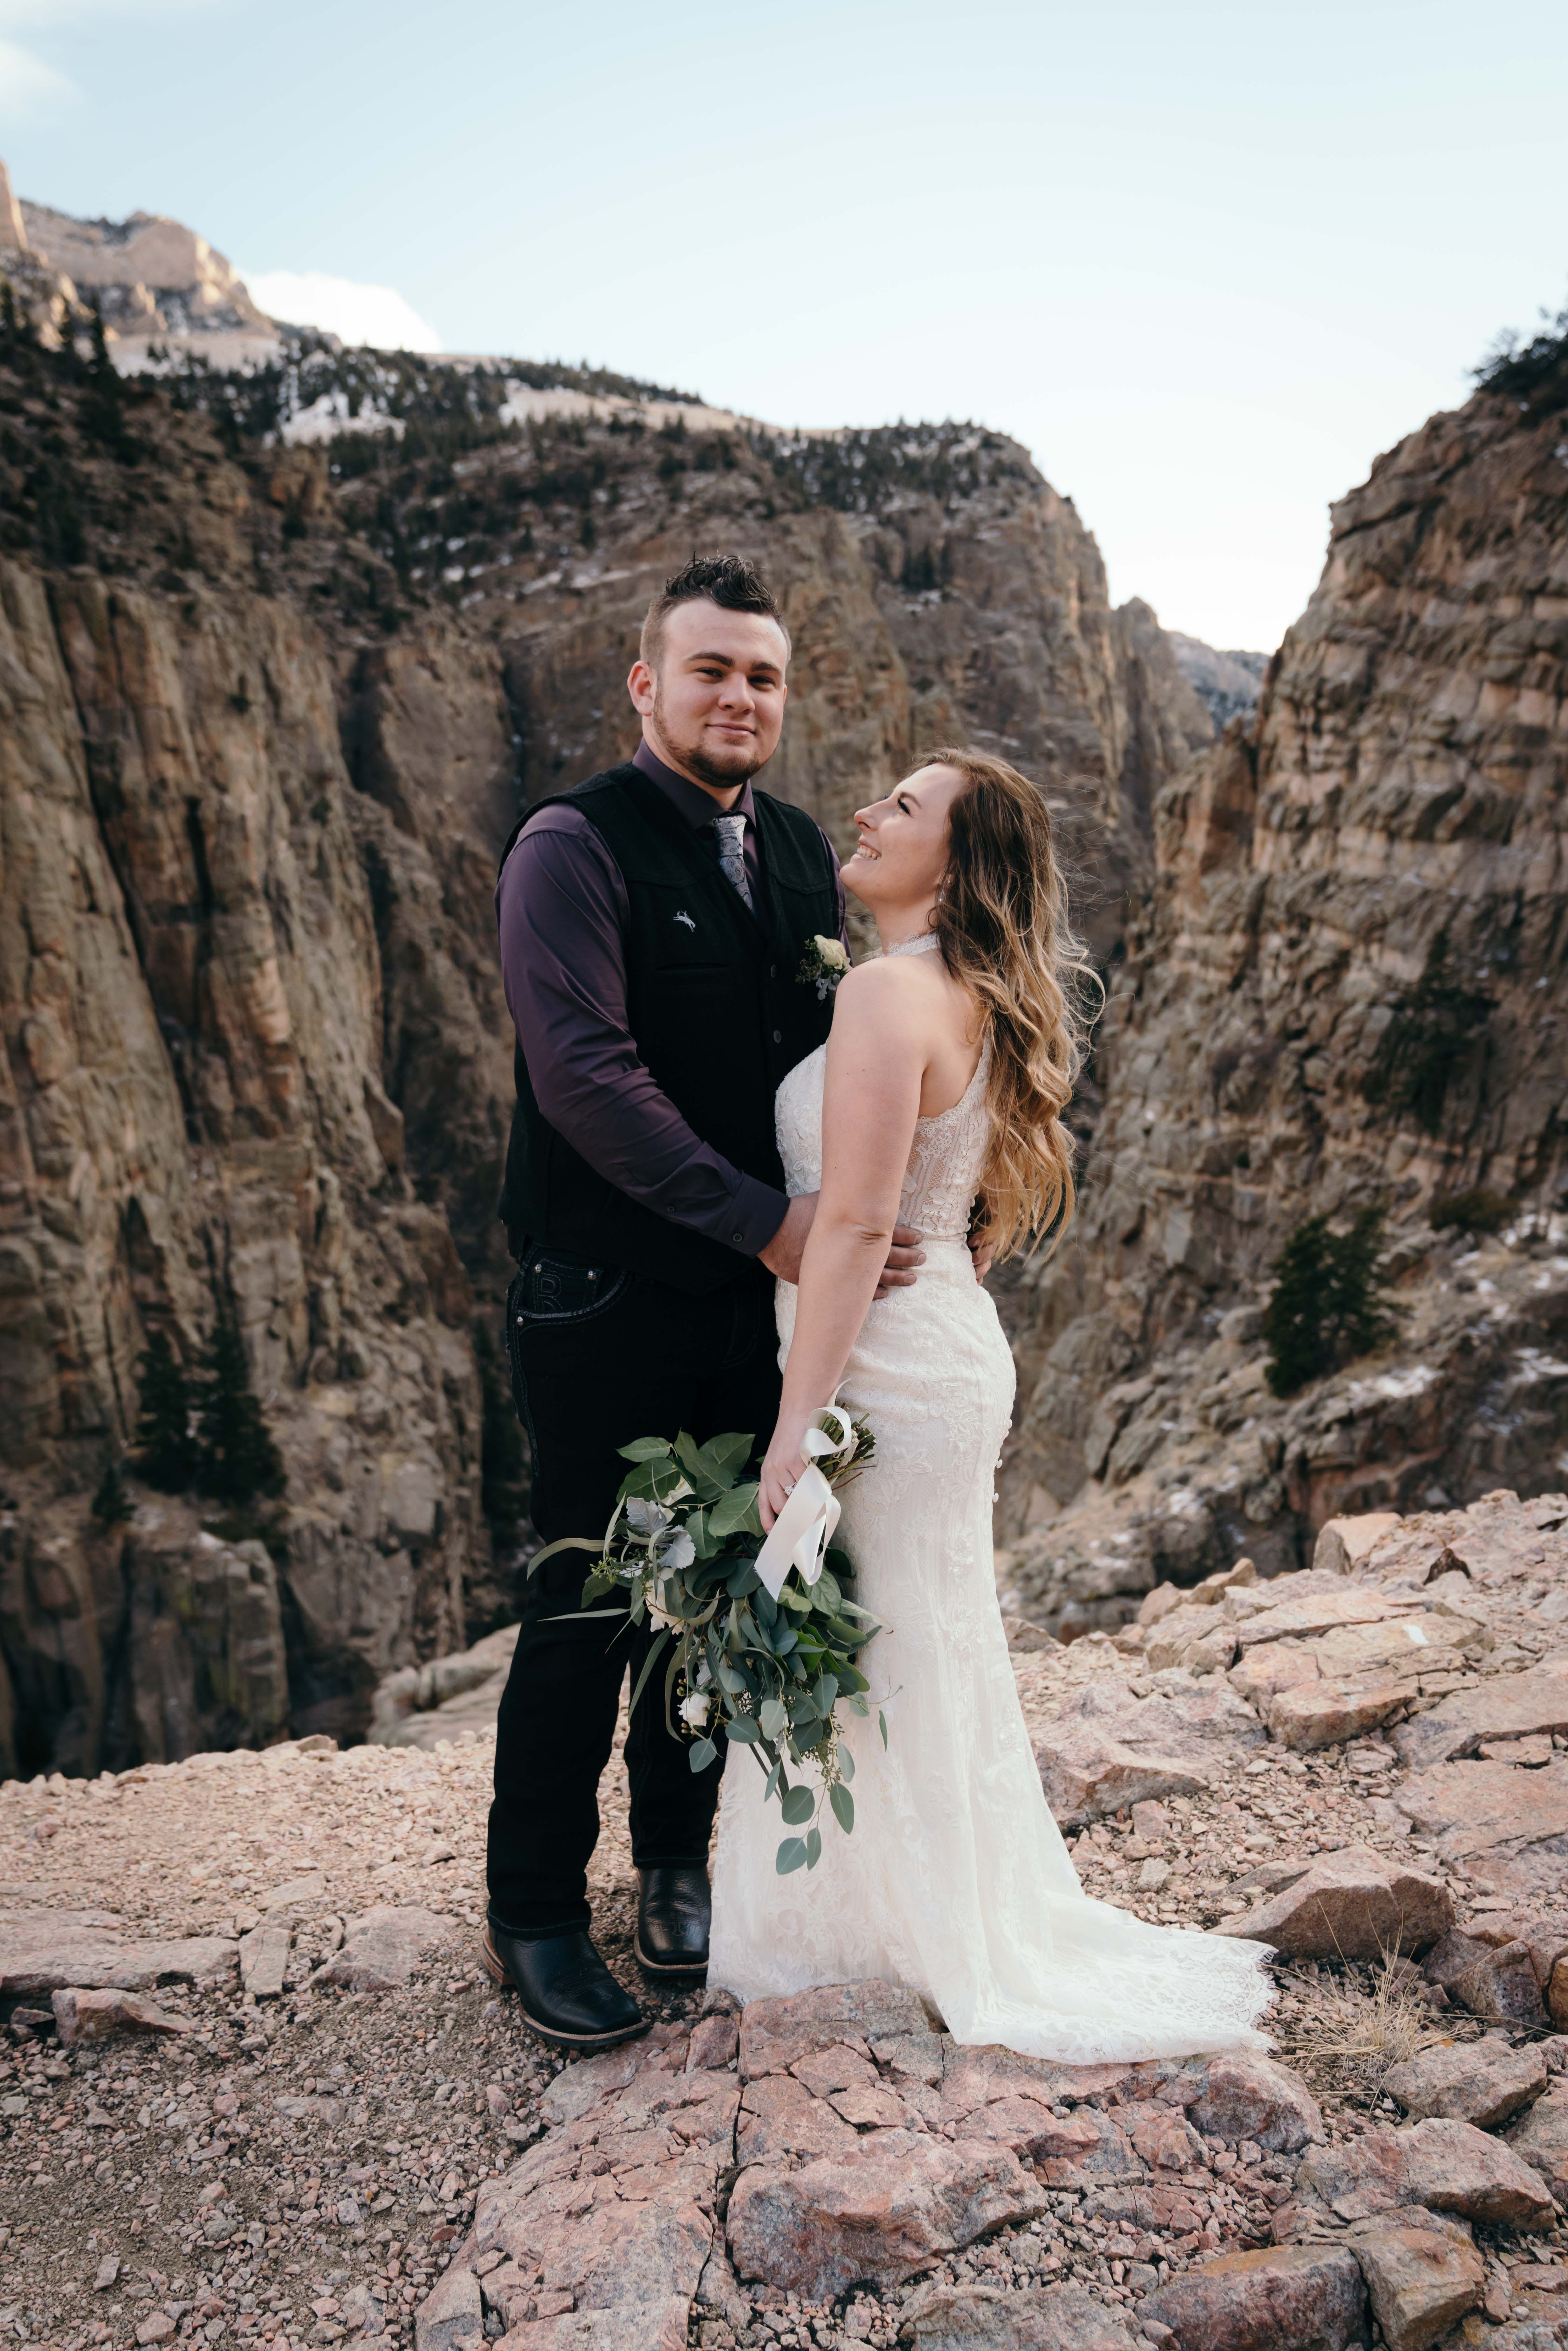 Canyon Views For This Bride Groom At Their Winter Wedding In Cody Wyoming Wyoming Weddings Rustic Winter Wedding Bride Groom